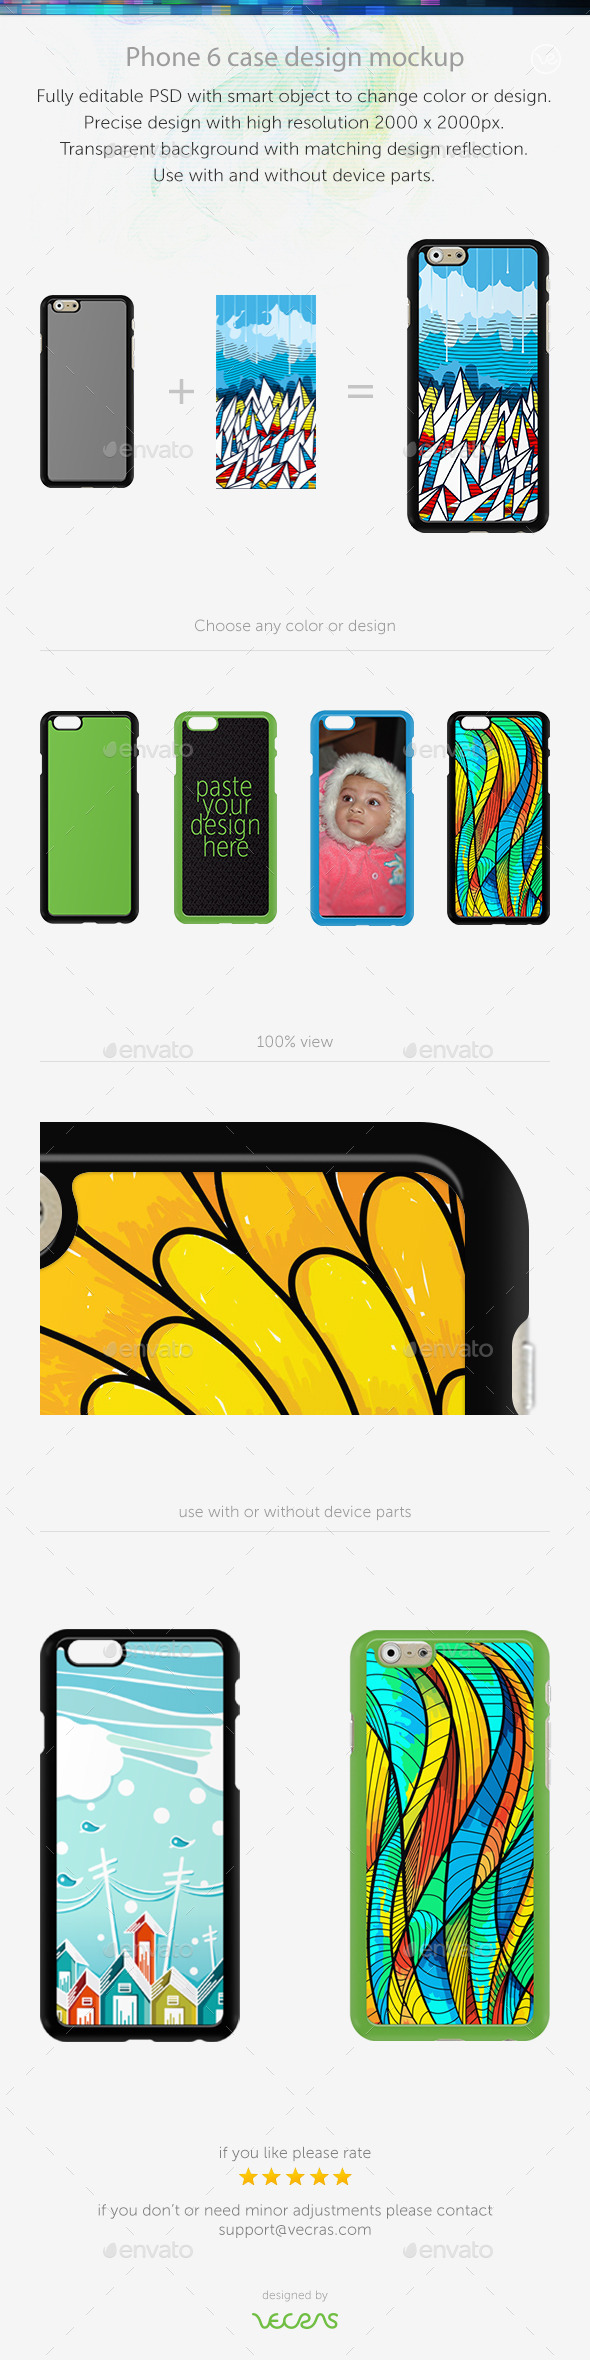 GraphicRiver Phone 6 Sticker Case Design Mockup 9701063